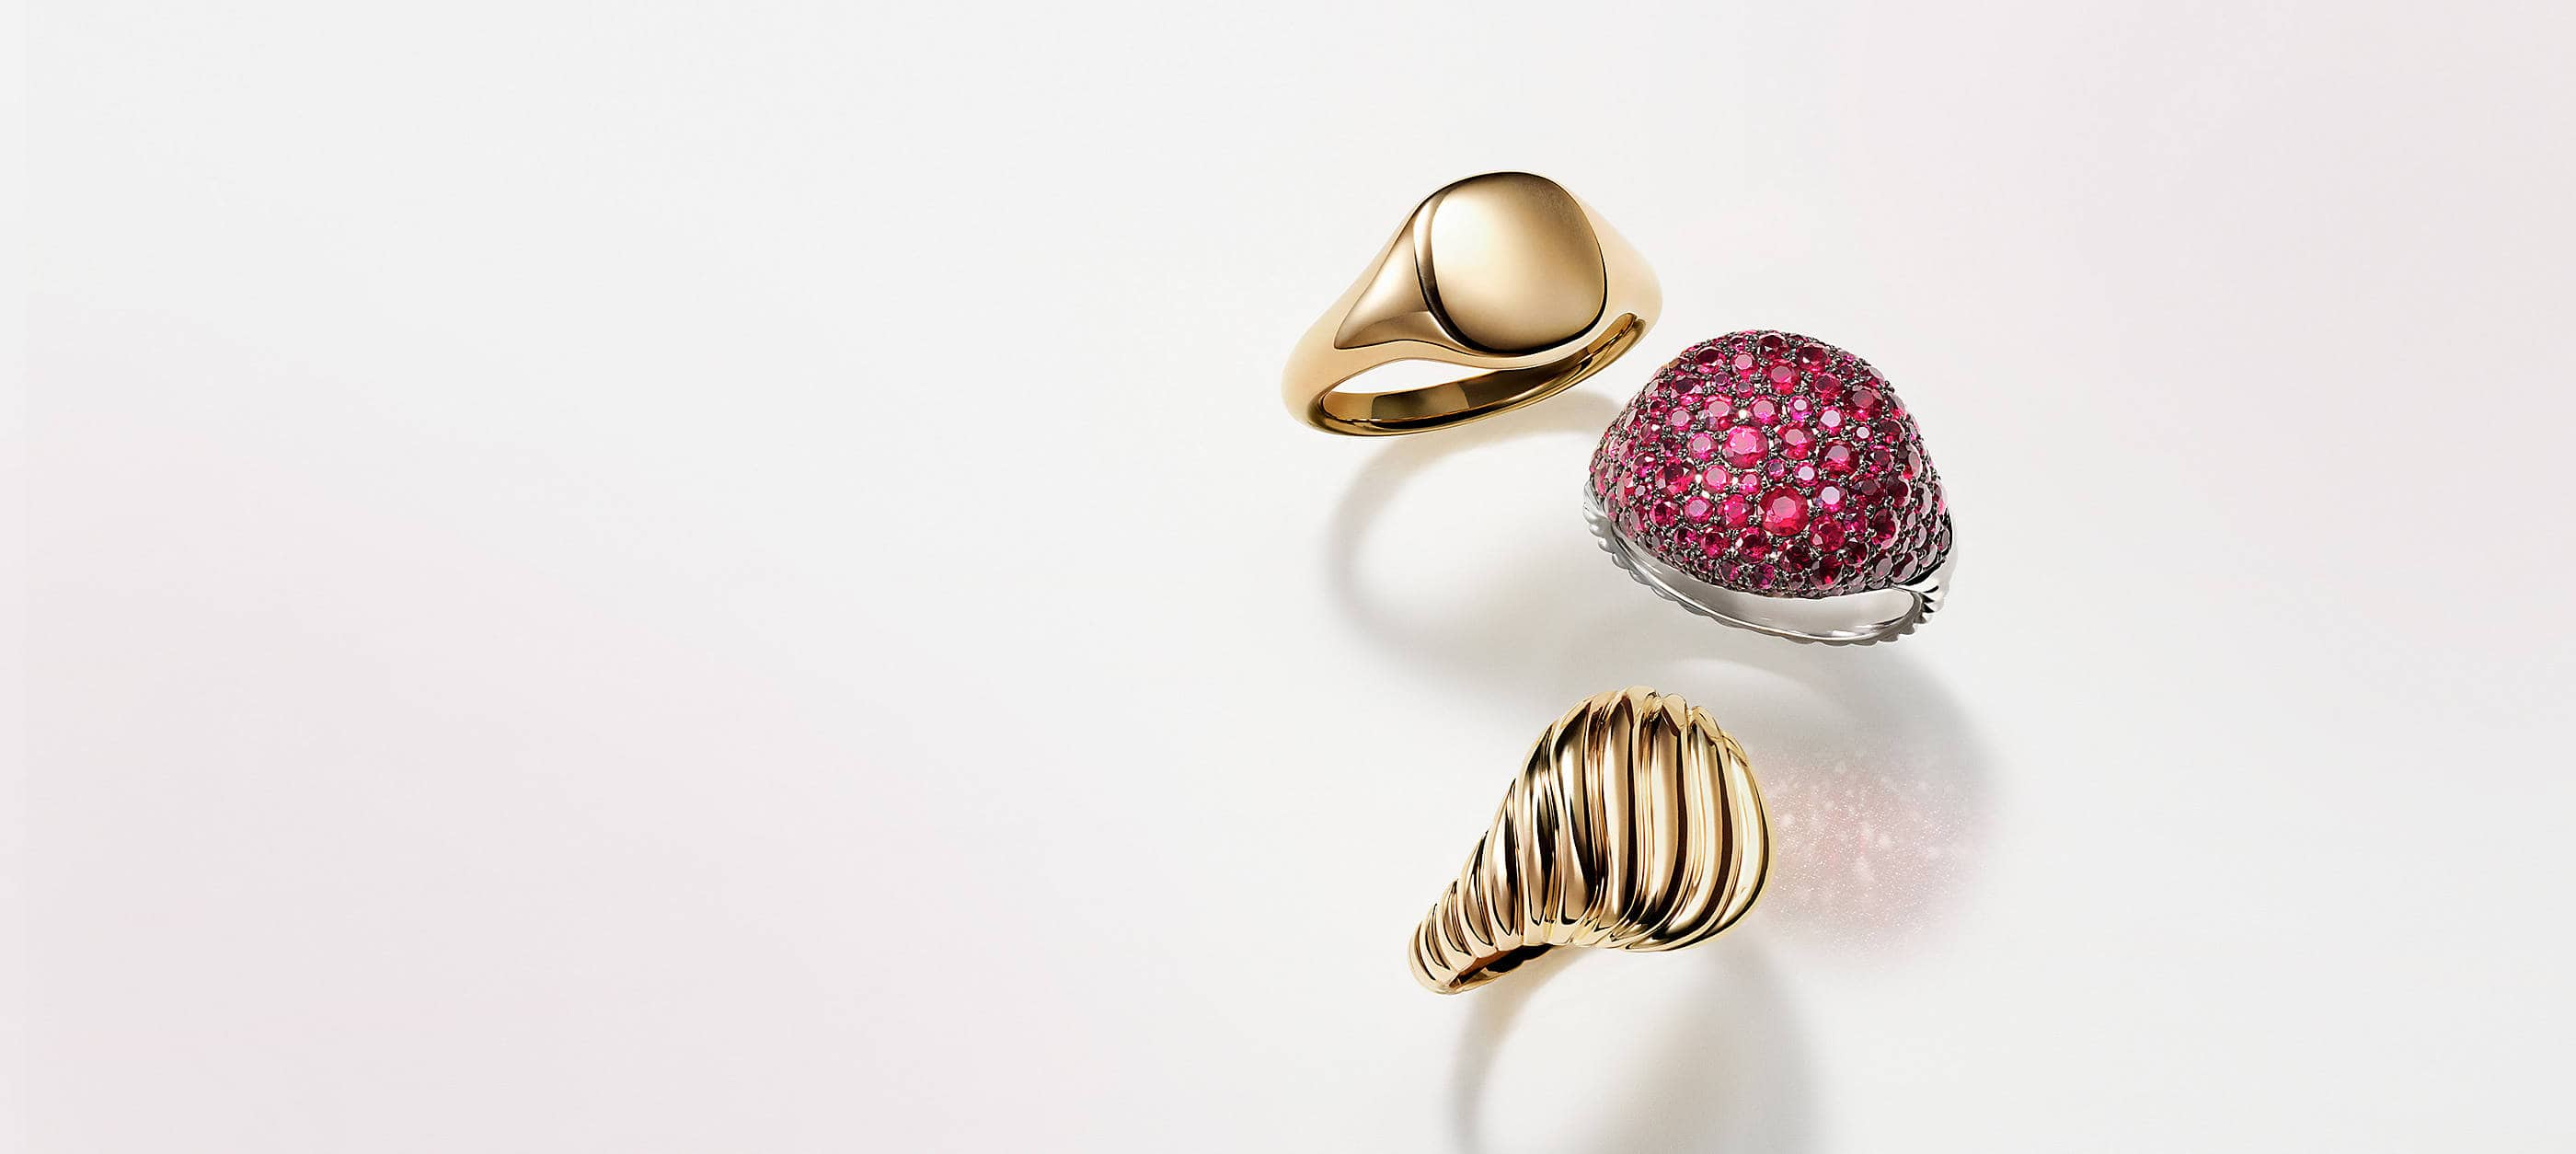 Three David Yurman pinky rings placed atop a white background with soft shadows. Two rings are crafted from smooth or Cabled 18K yellow gold. The final ring is crafted from 18K white gold with pavé rubies.